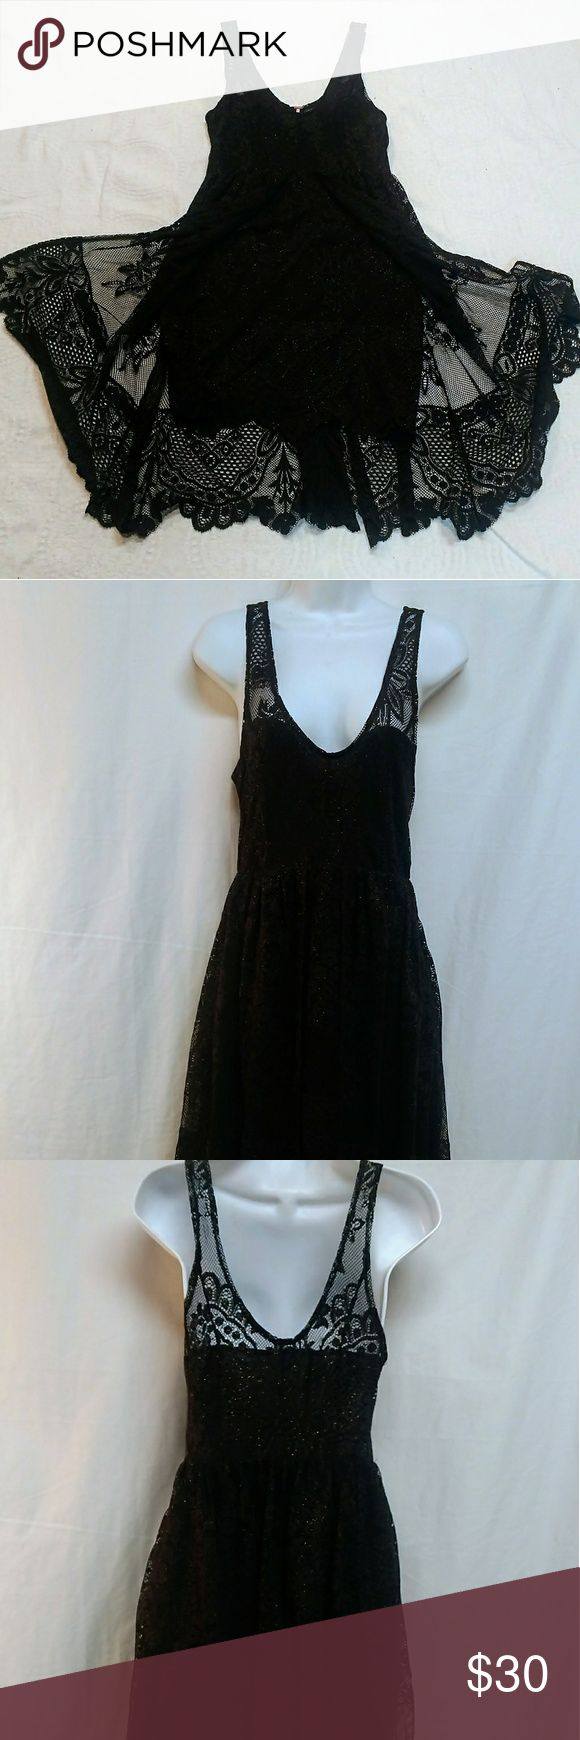 """Free People Black Lace Skater Dress. Size 6 Free People black lace skater dress with gold sparkle flecks throughout.  This dress has an attached open layer that makes this dress super fun and flirty.  The bust and skirt are lined and has a hidden side zipper.  Measurements laying flat are:  Bust 15""""  Waist 13""""  Inner skirt length is 34"""" with layers 39"""".   Ships in 1 business day.  Smoke free environment.   Thanks! Free People Dresses"""